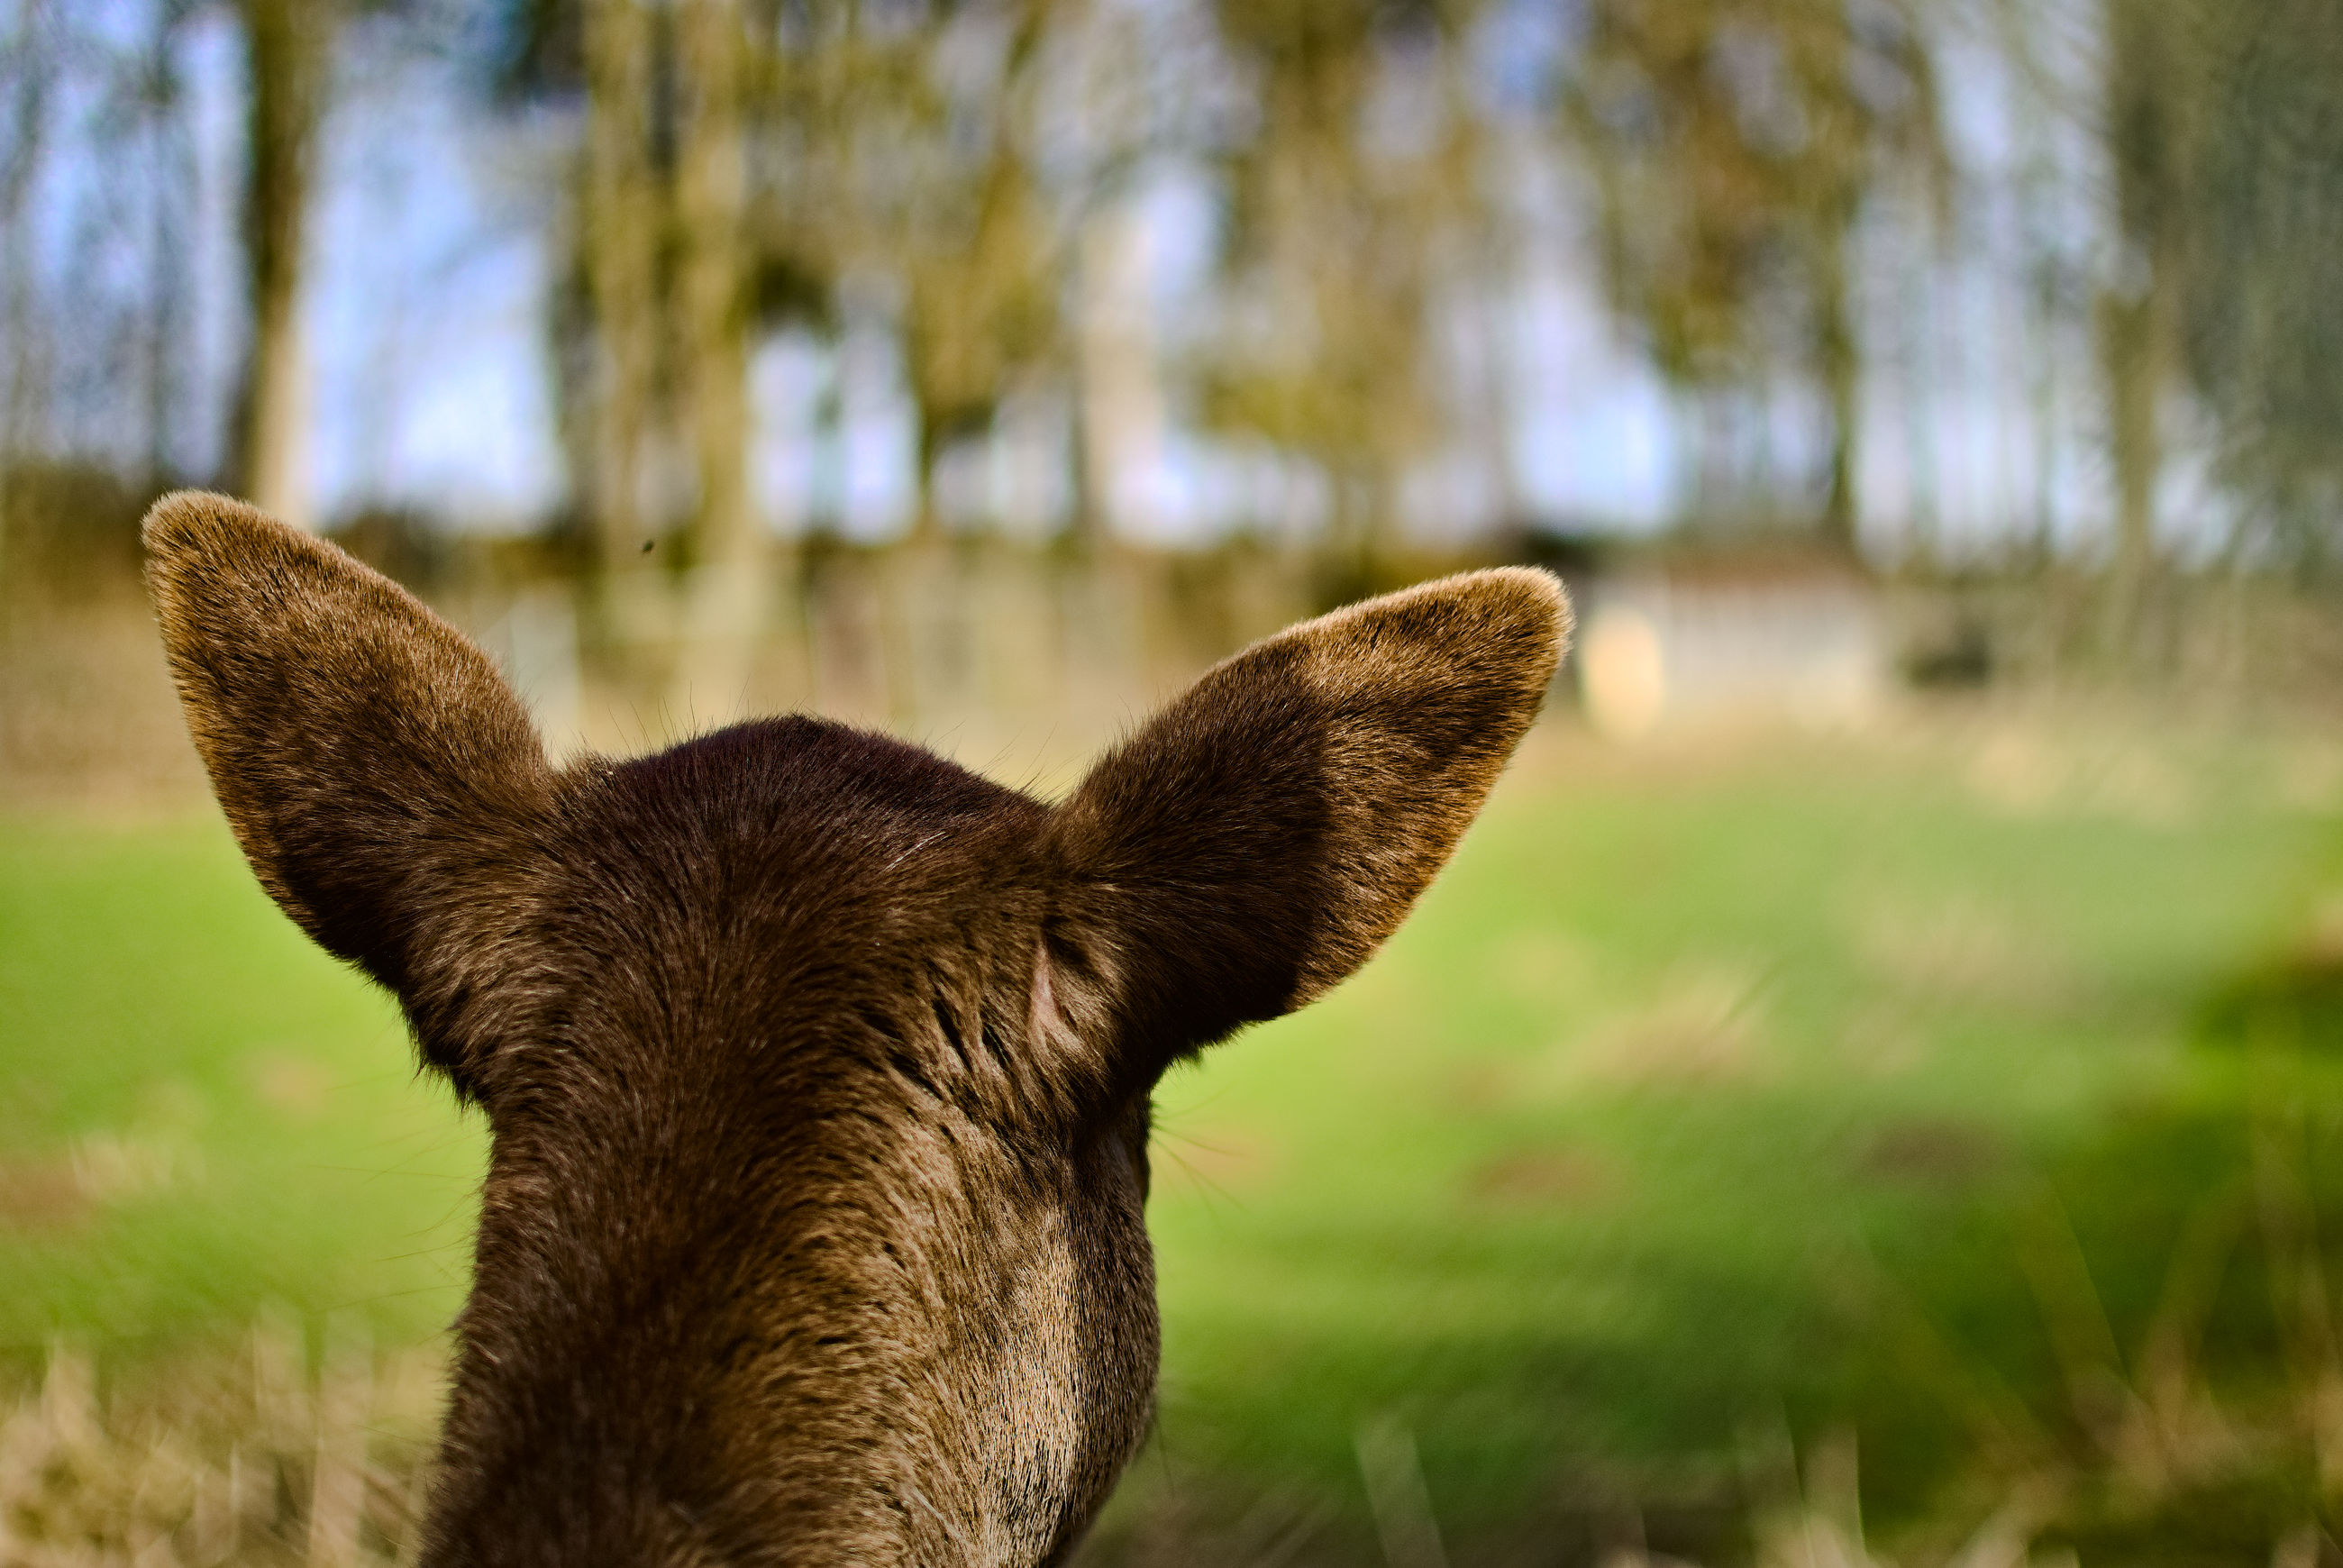 one animal, animal, mammal, animal themes, domestic animals, plant, vertebrate, focus on foreground, land, nature, pets, no people, domestic, grass, animal body part, field, day, close-up, animal ear, green color, animal head, outdoors, herbivorous